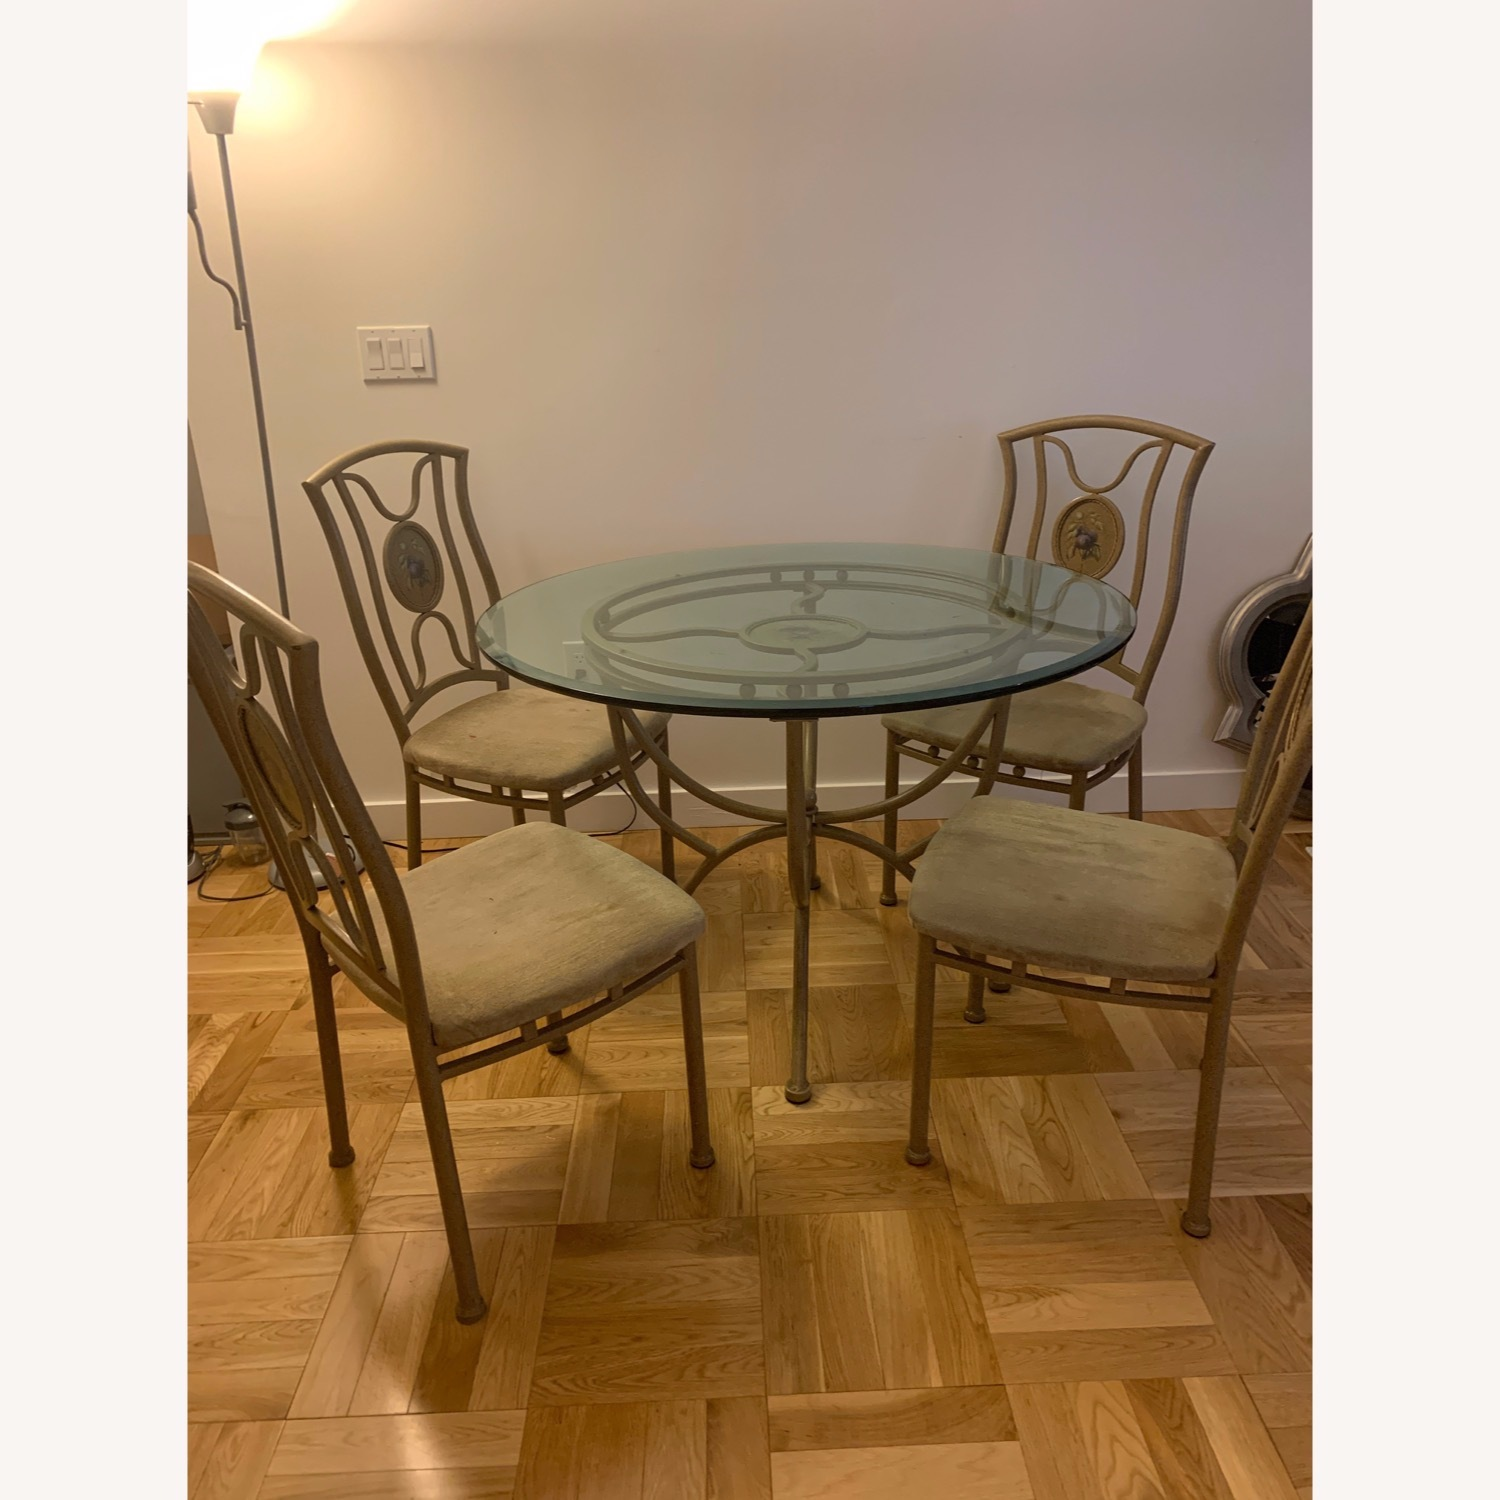 Vintage Glass Dining Room Table and Chair Set - image-5